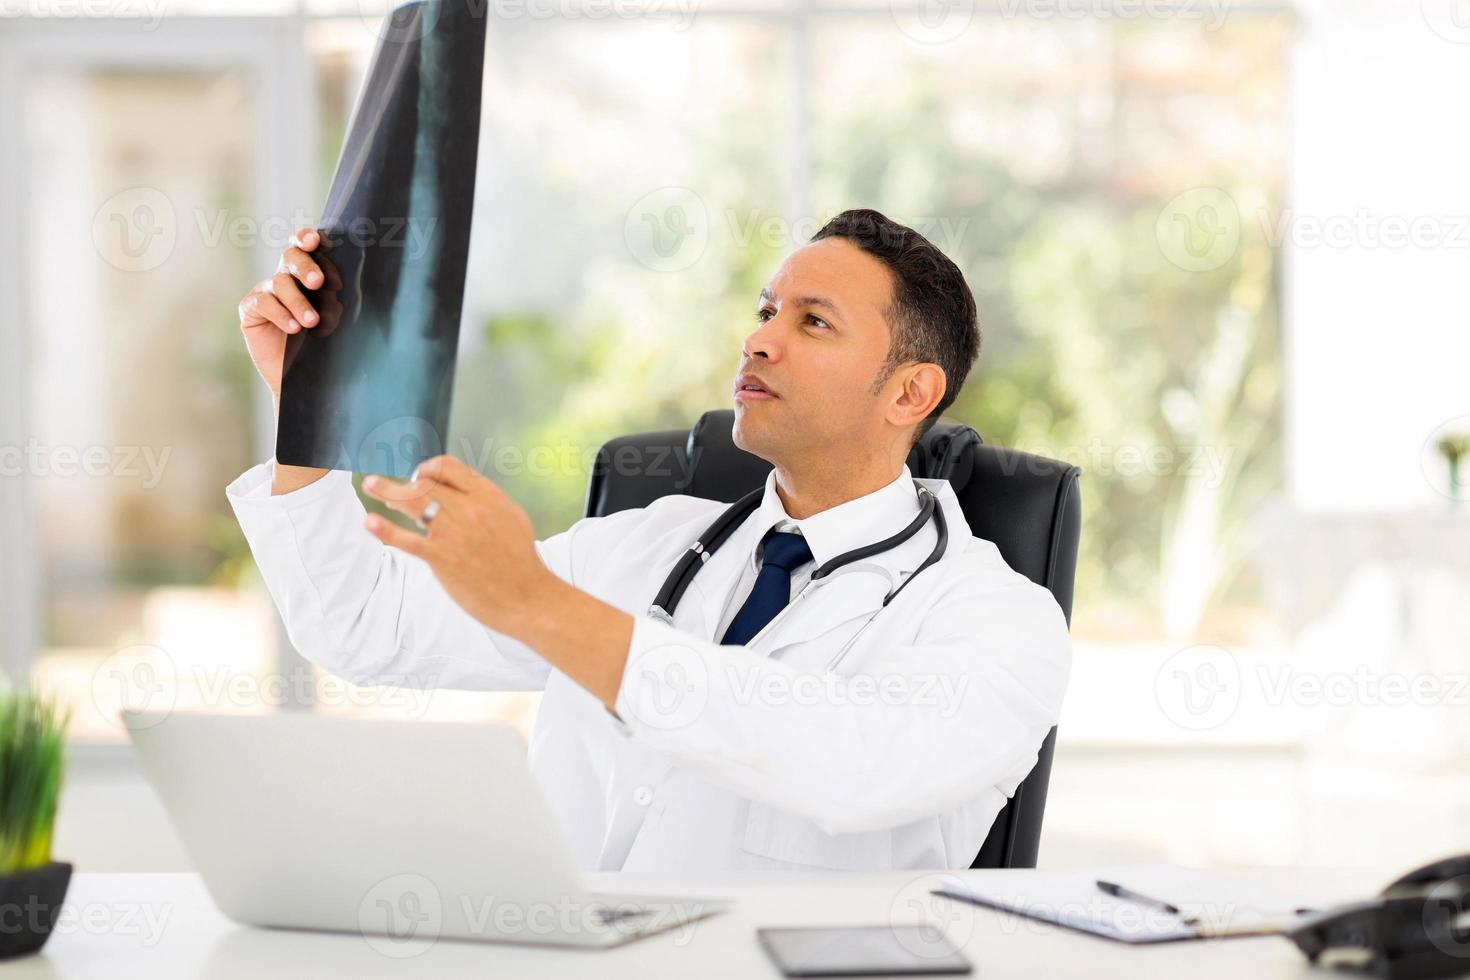 middle aged doctor looking at patient's x-ray photo